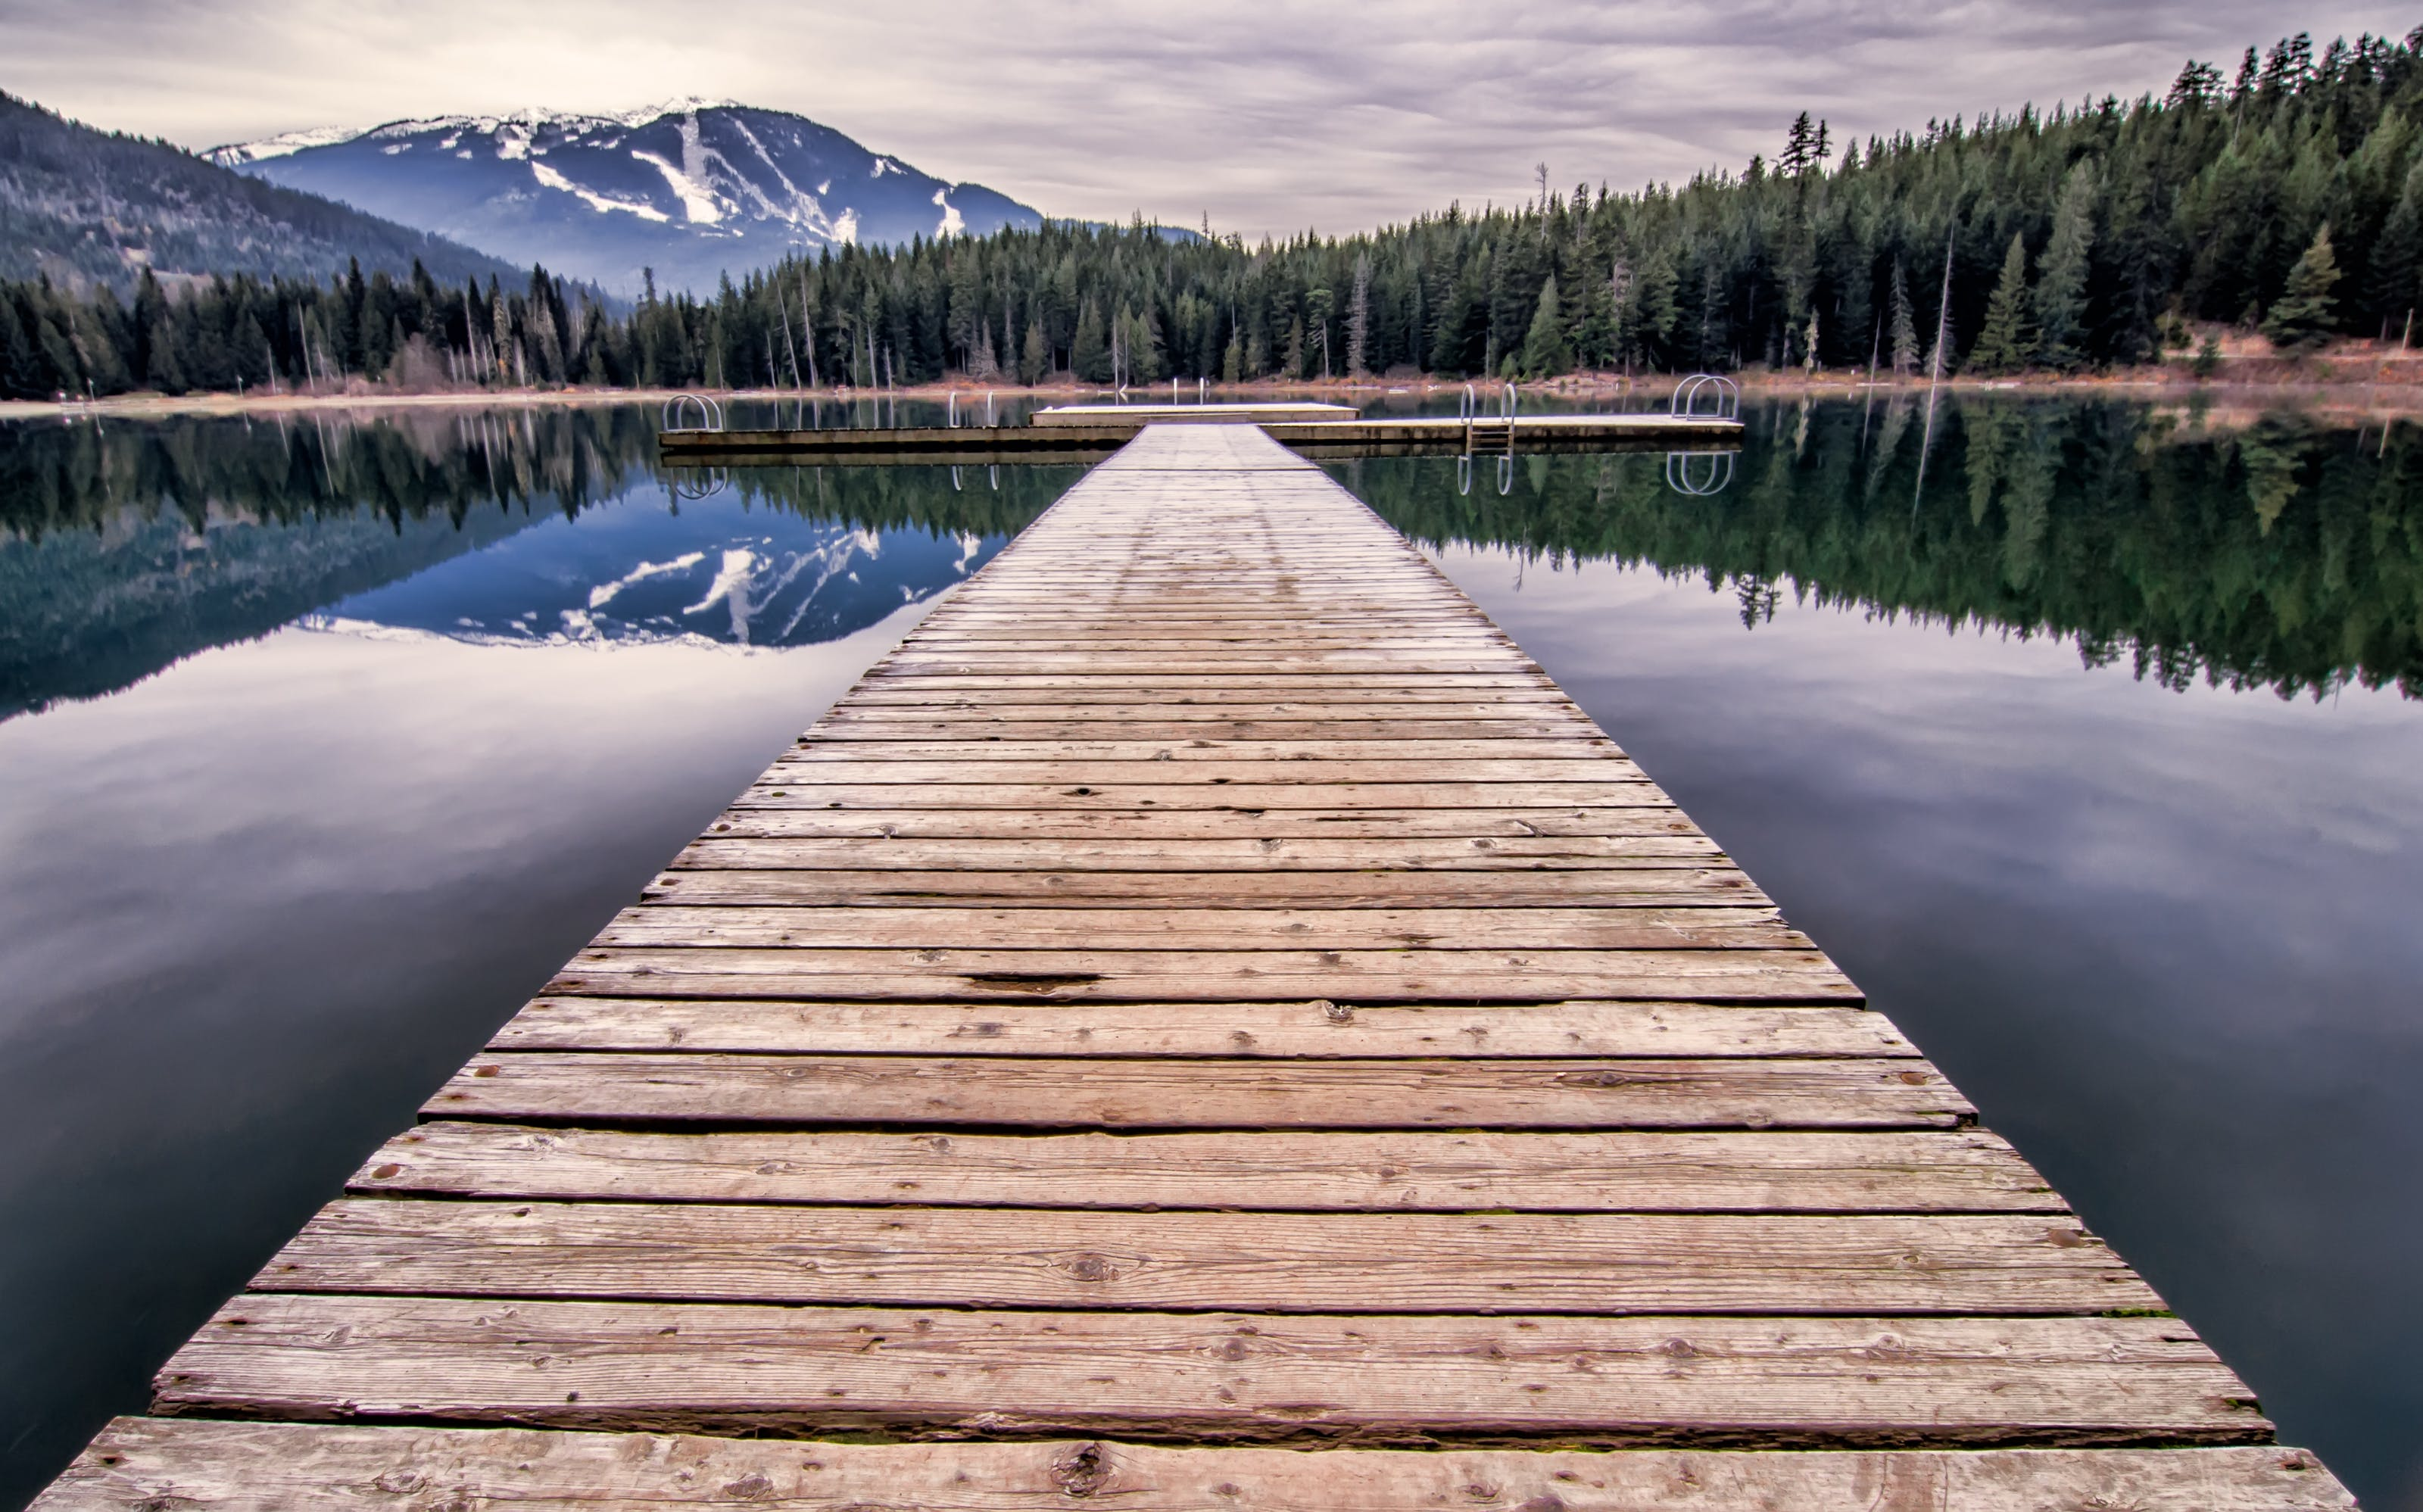 Wooden Dock at the Lake during Day